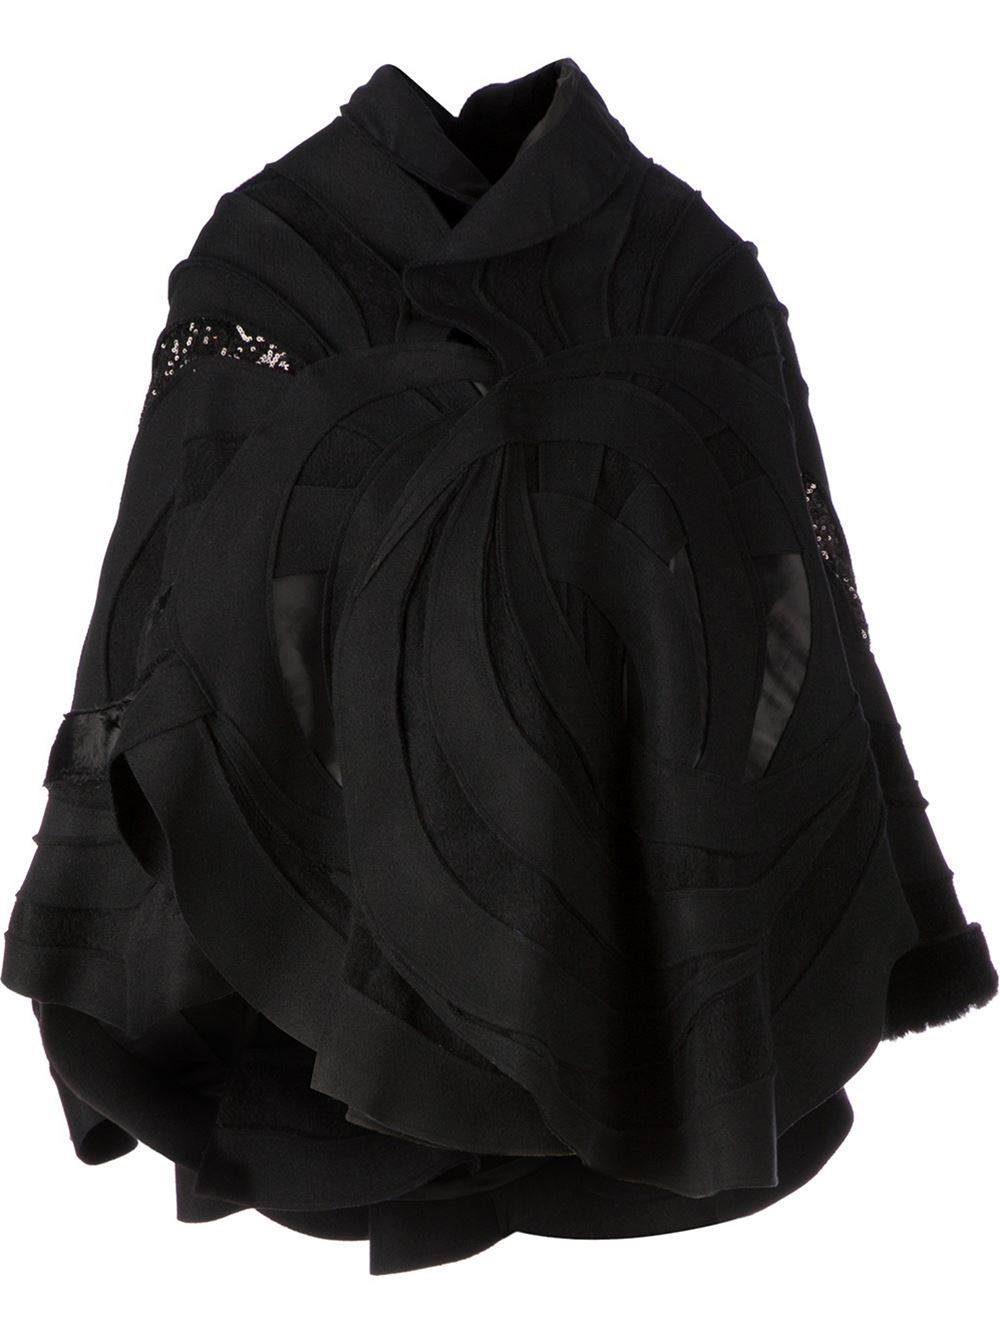 Pick Of The Day: Junya Watanabe Patchwork Cloak